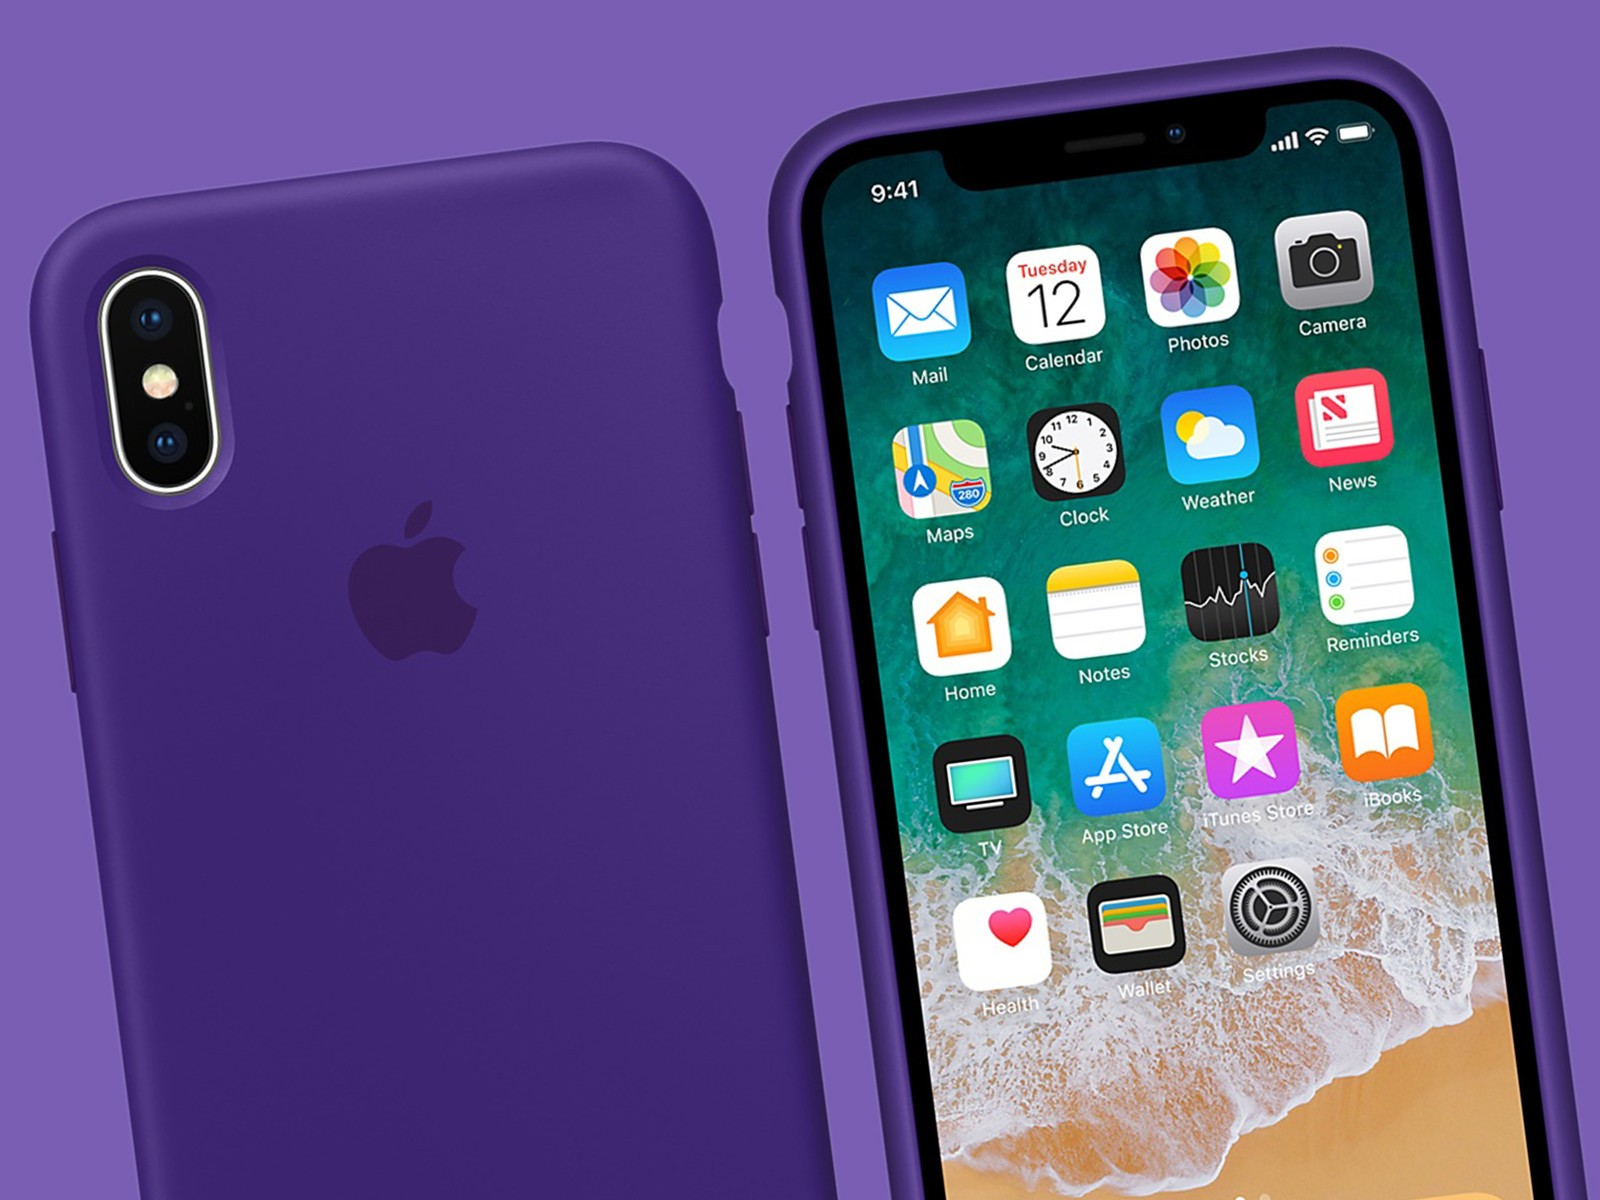 Apples New IPhone X Is Shown Wrapped In The Companys Ultra Violet Silicone Case